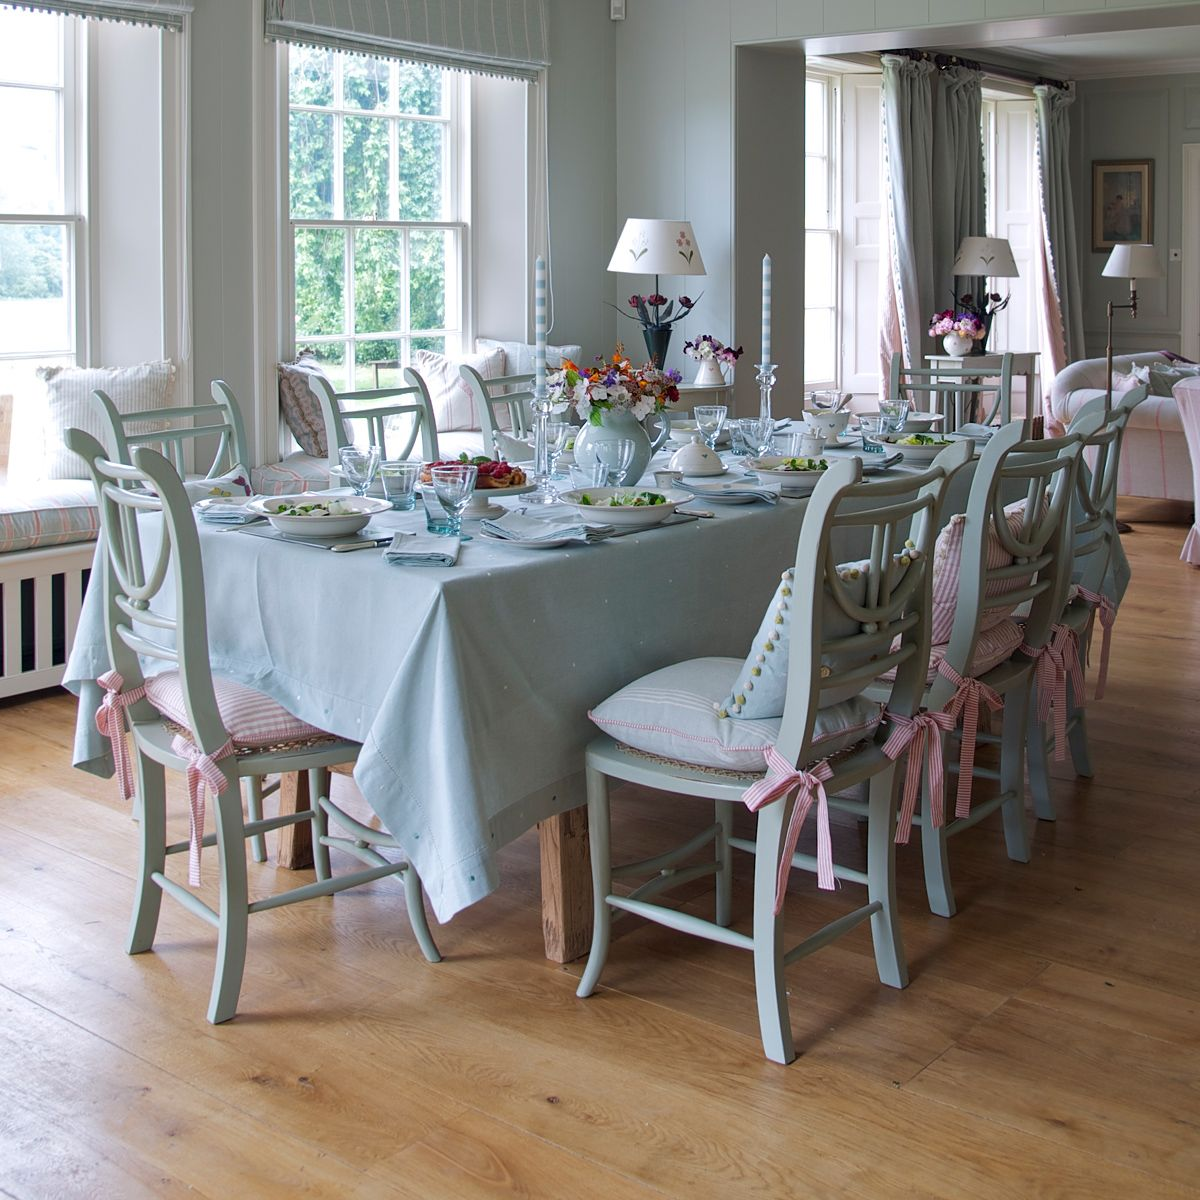 kitchen chairs | Painted Kitchen Chair With Cane Seat | DiNiNG ...